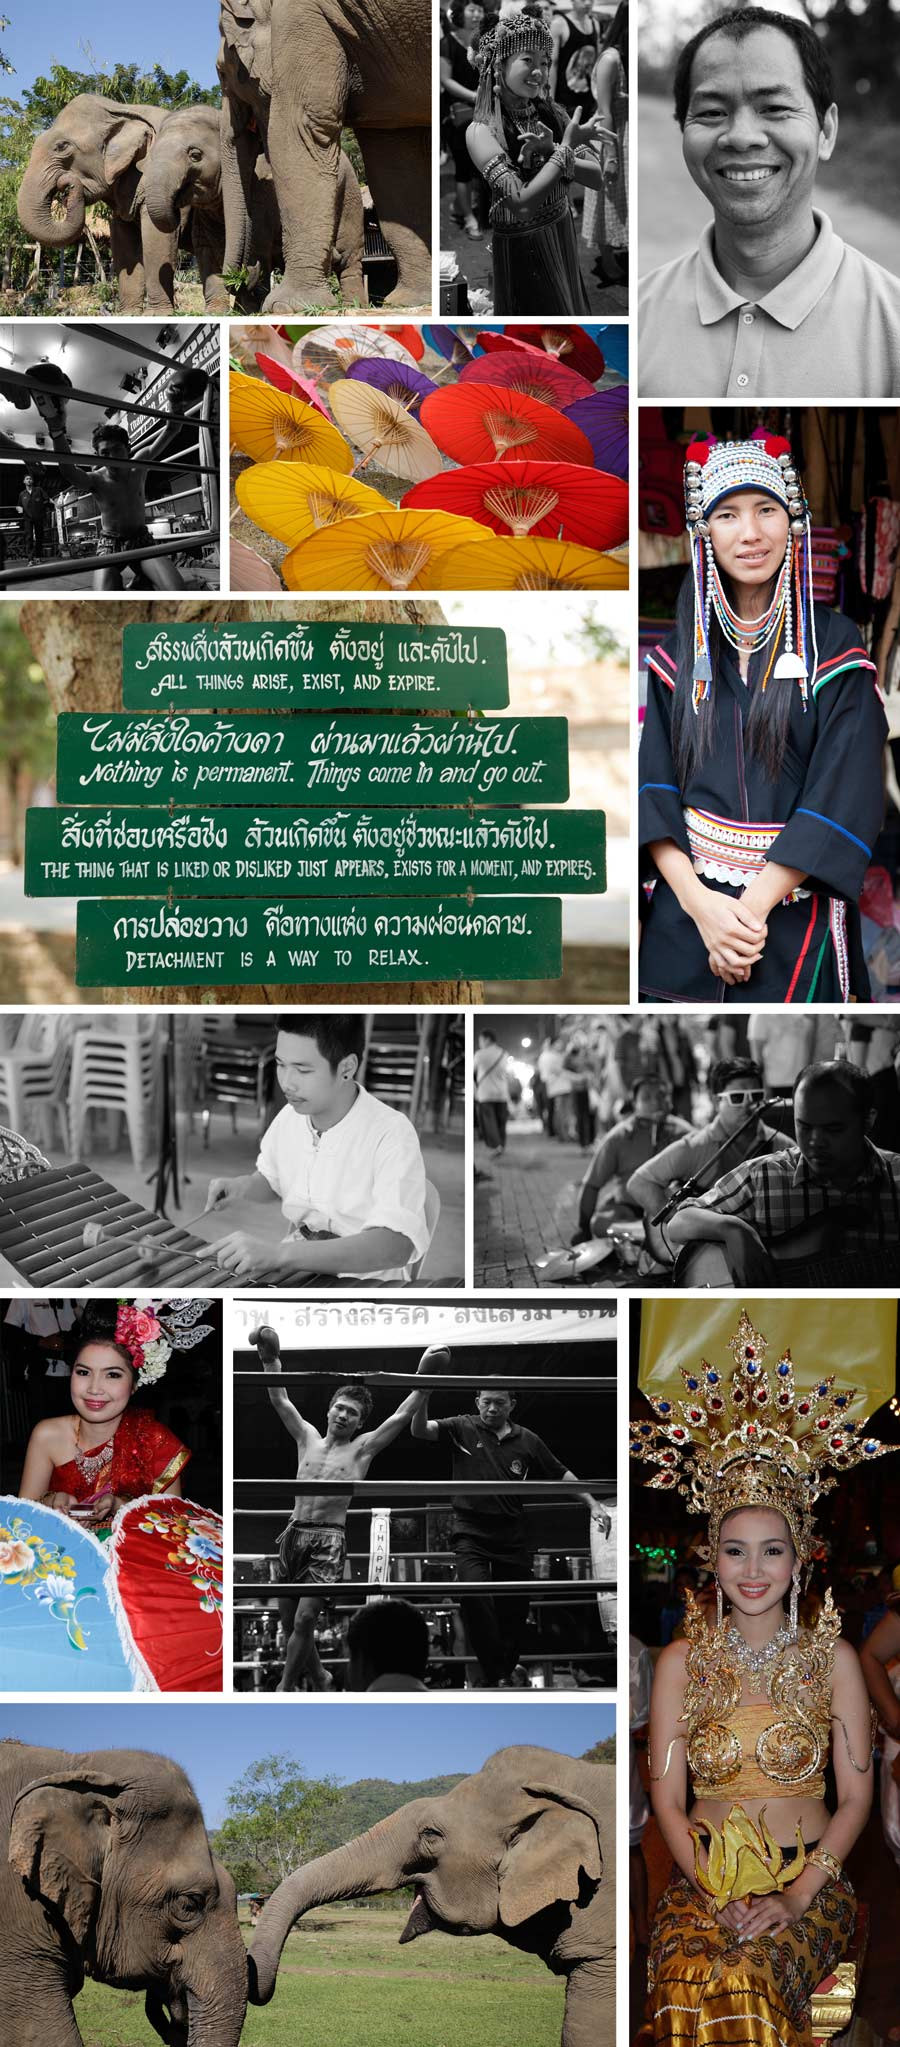 blackrabbitphotographics_thailand_chiang mai_culture_elephants_people_photography